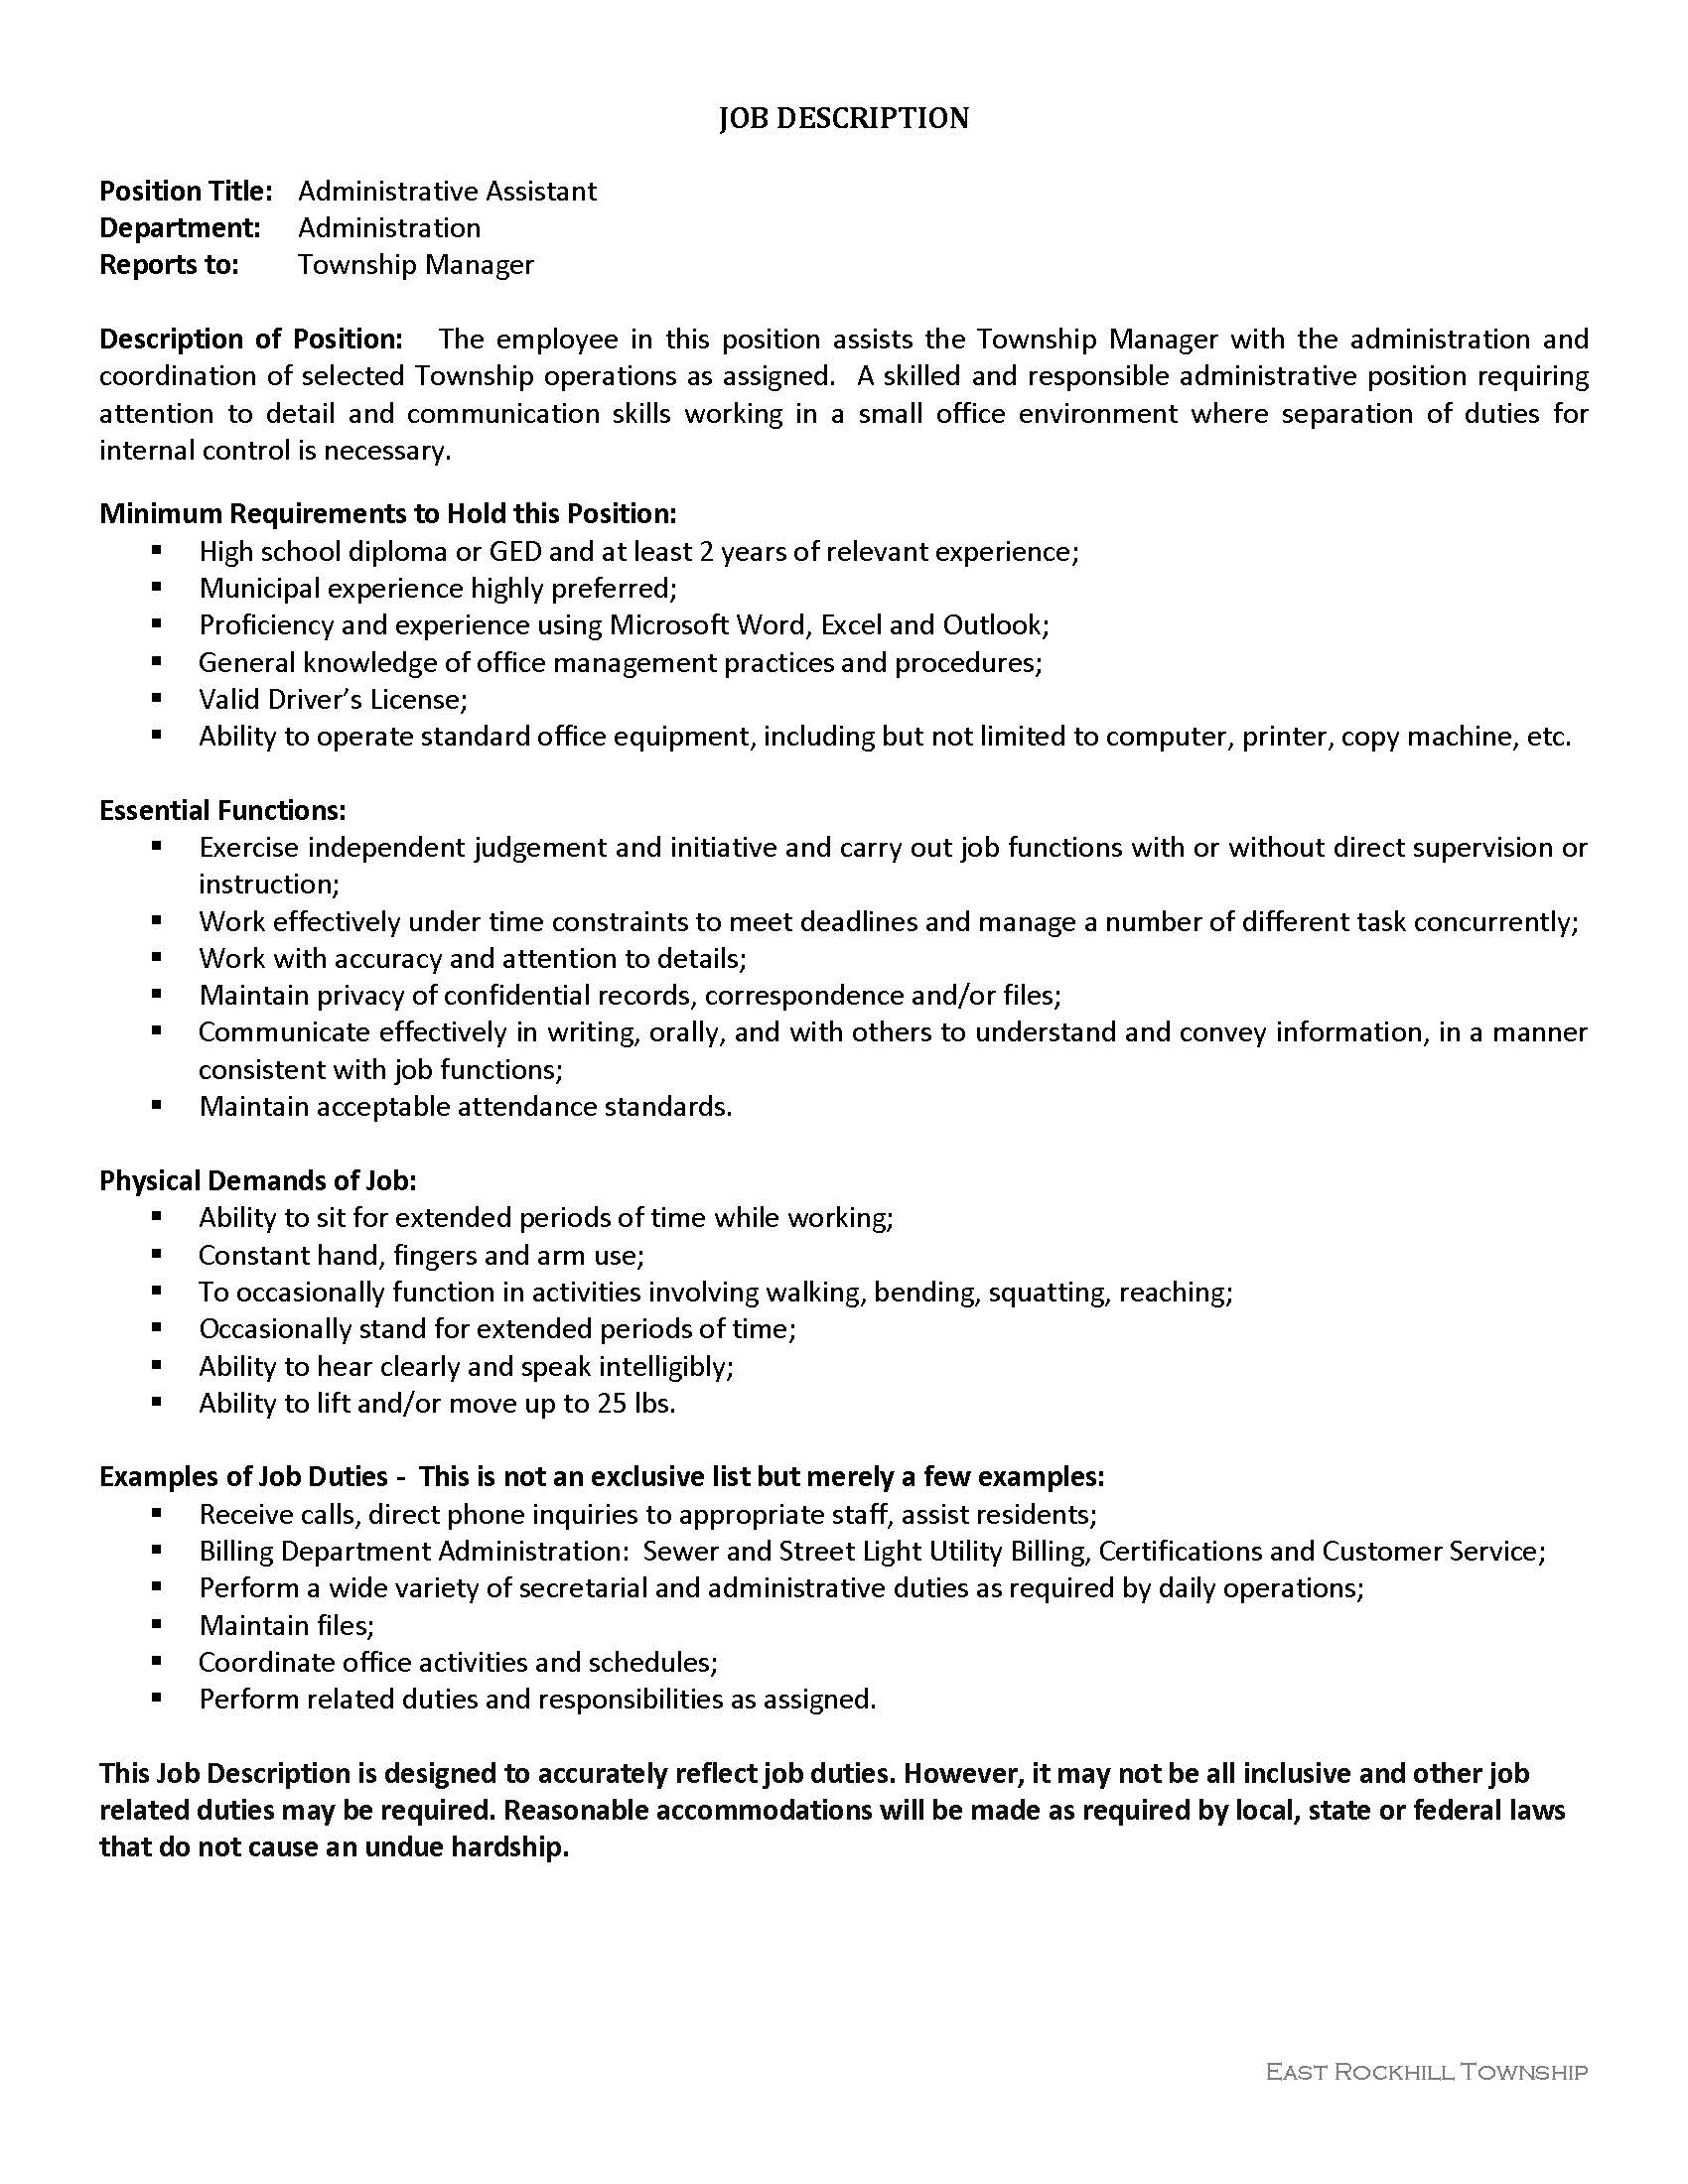 Administrative Assistant Administrative Assistant Job Opening East Rockhill Township